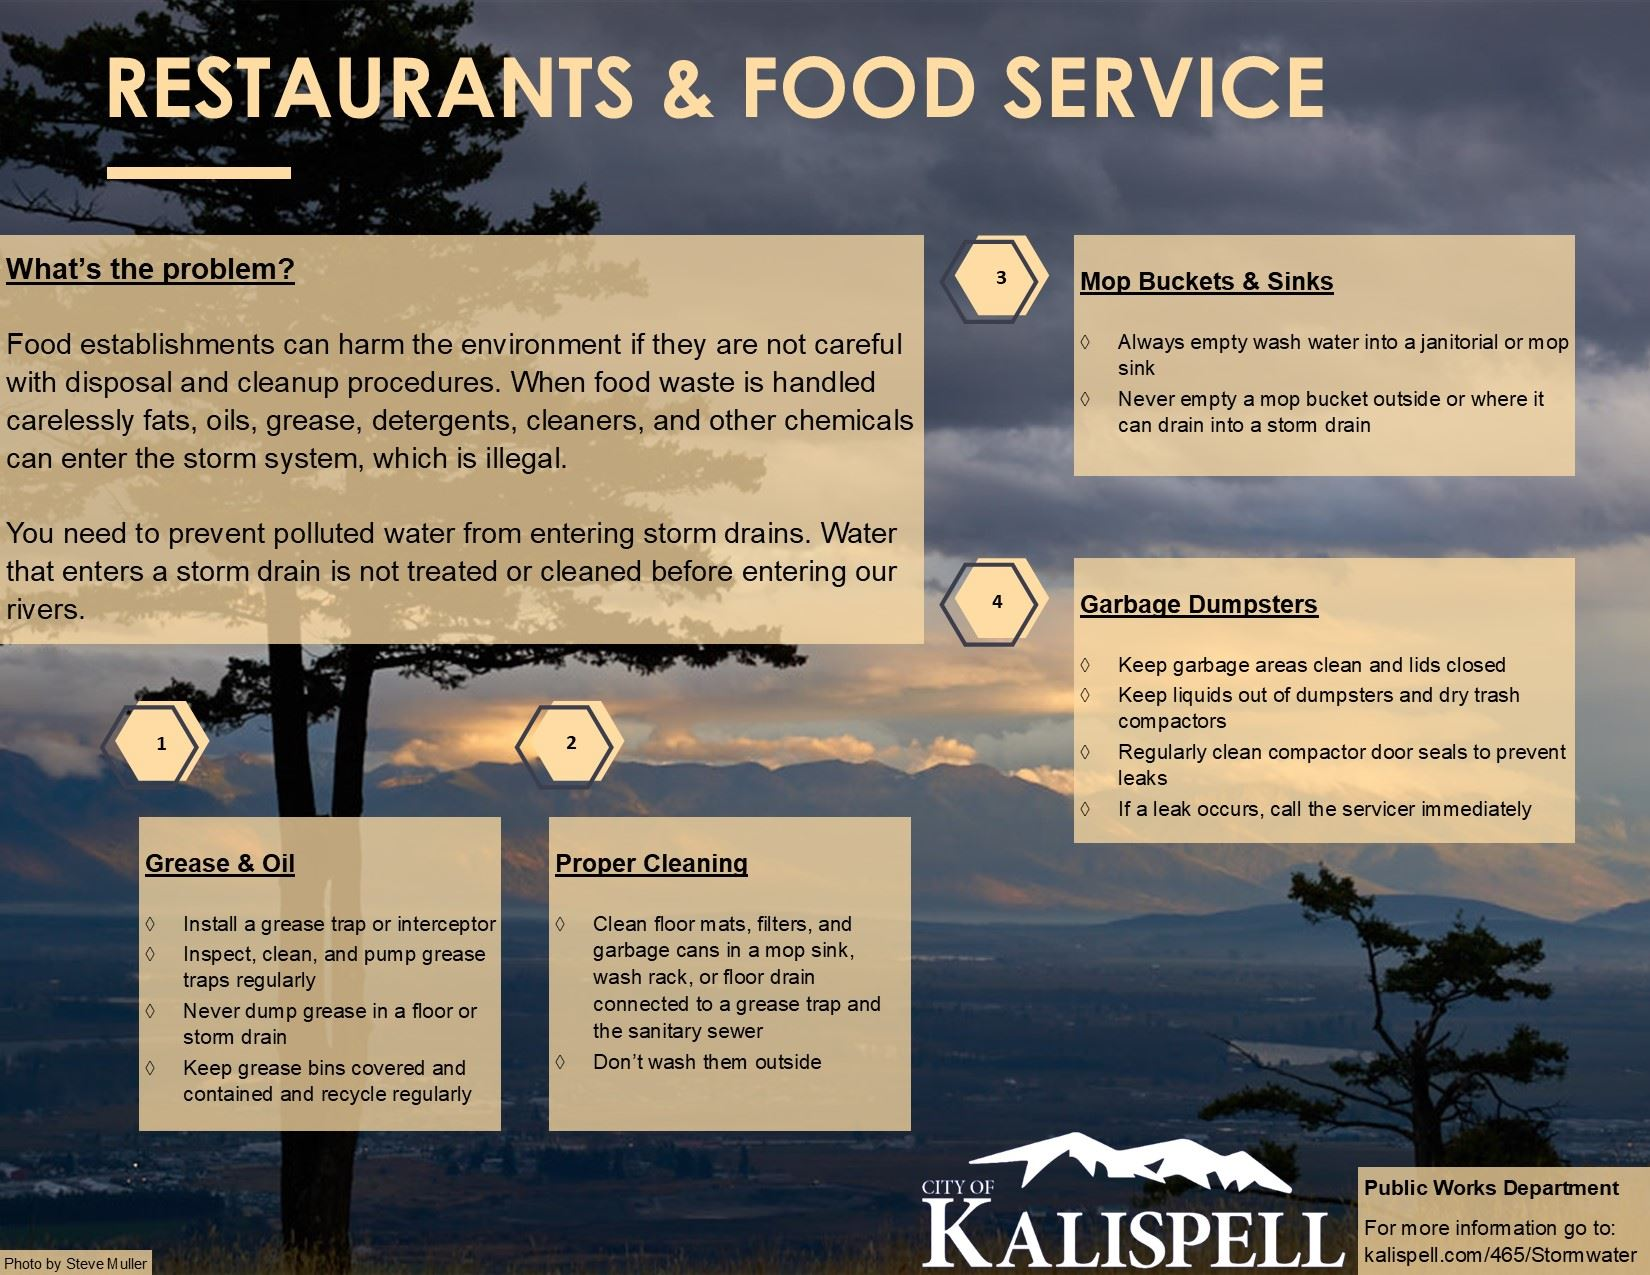 Restaurants and Food Services Best Management Practices